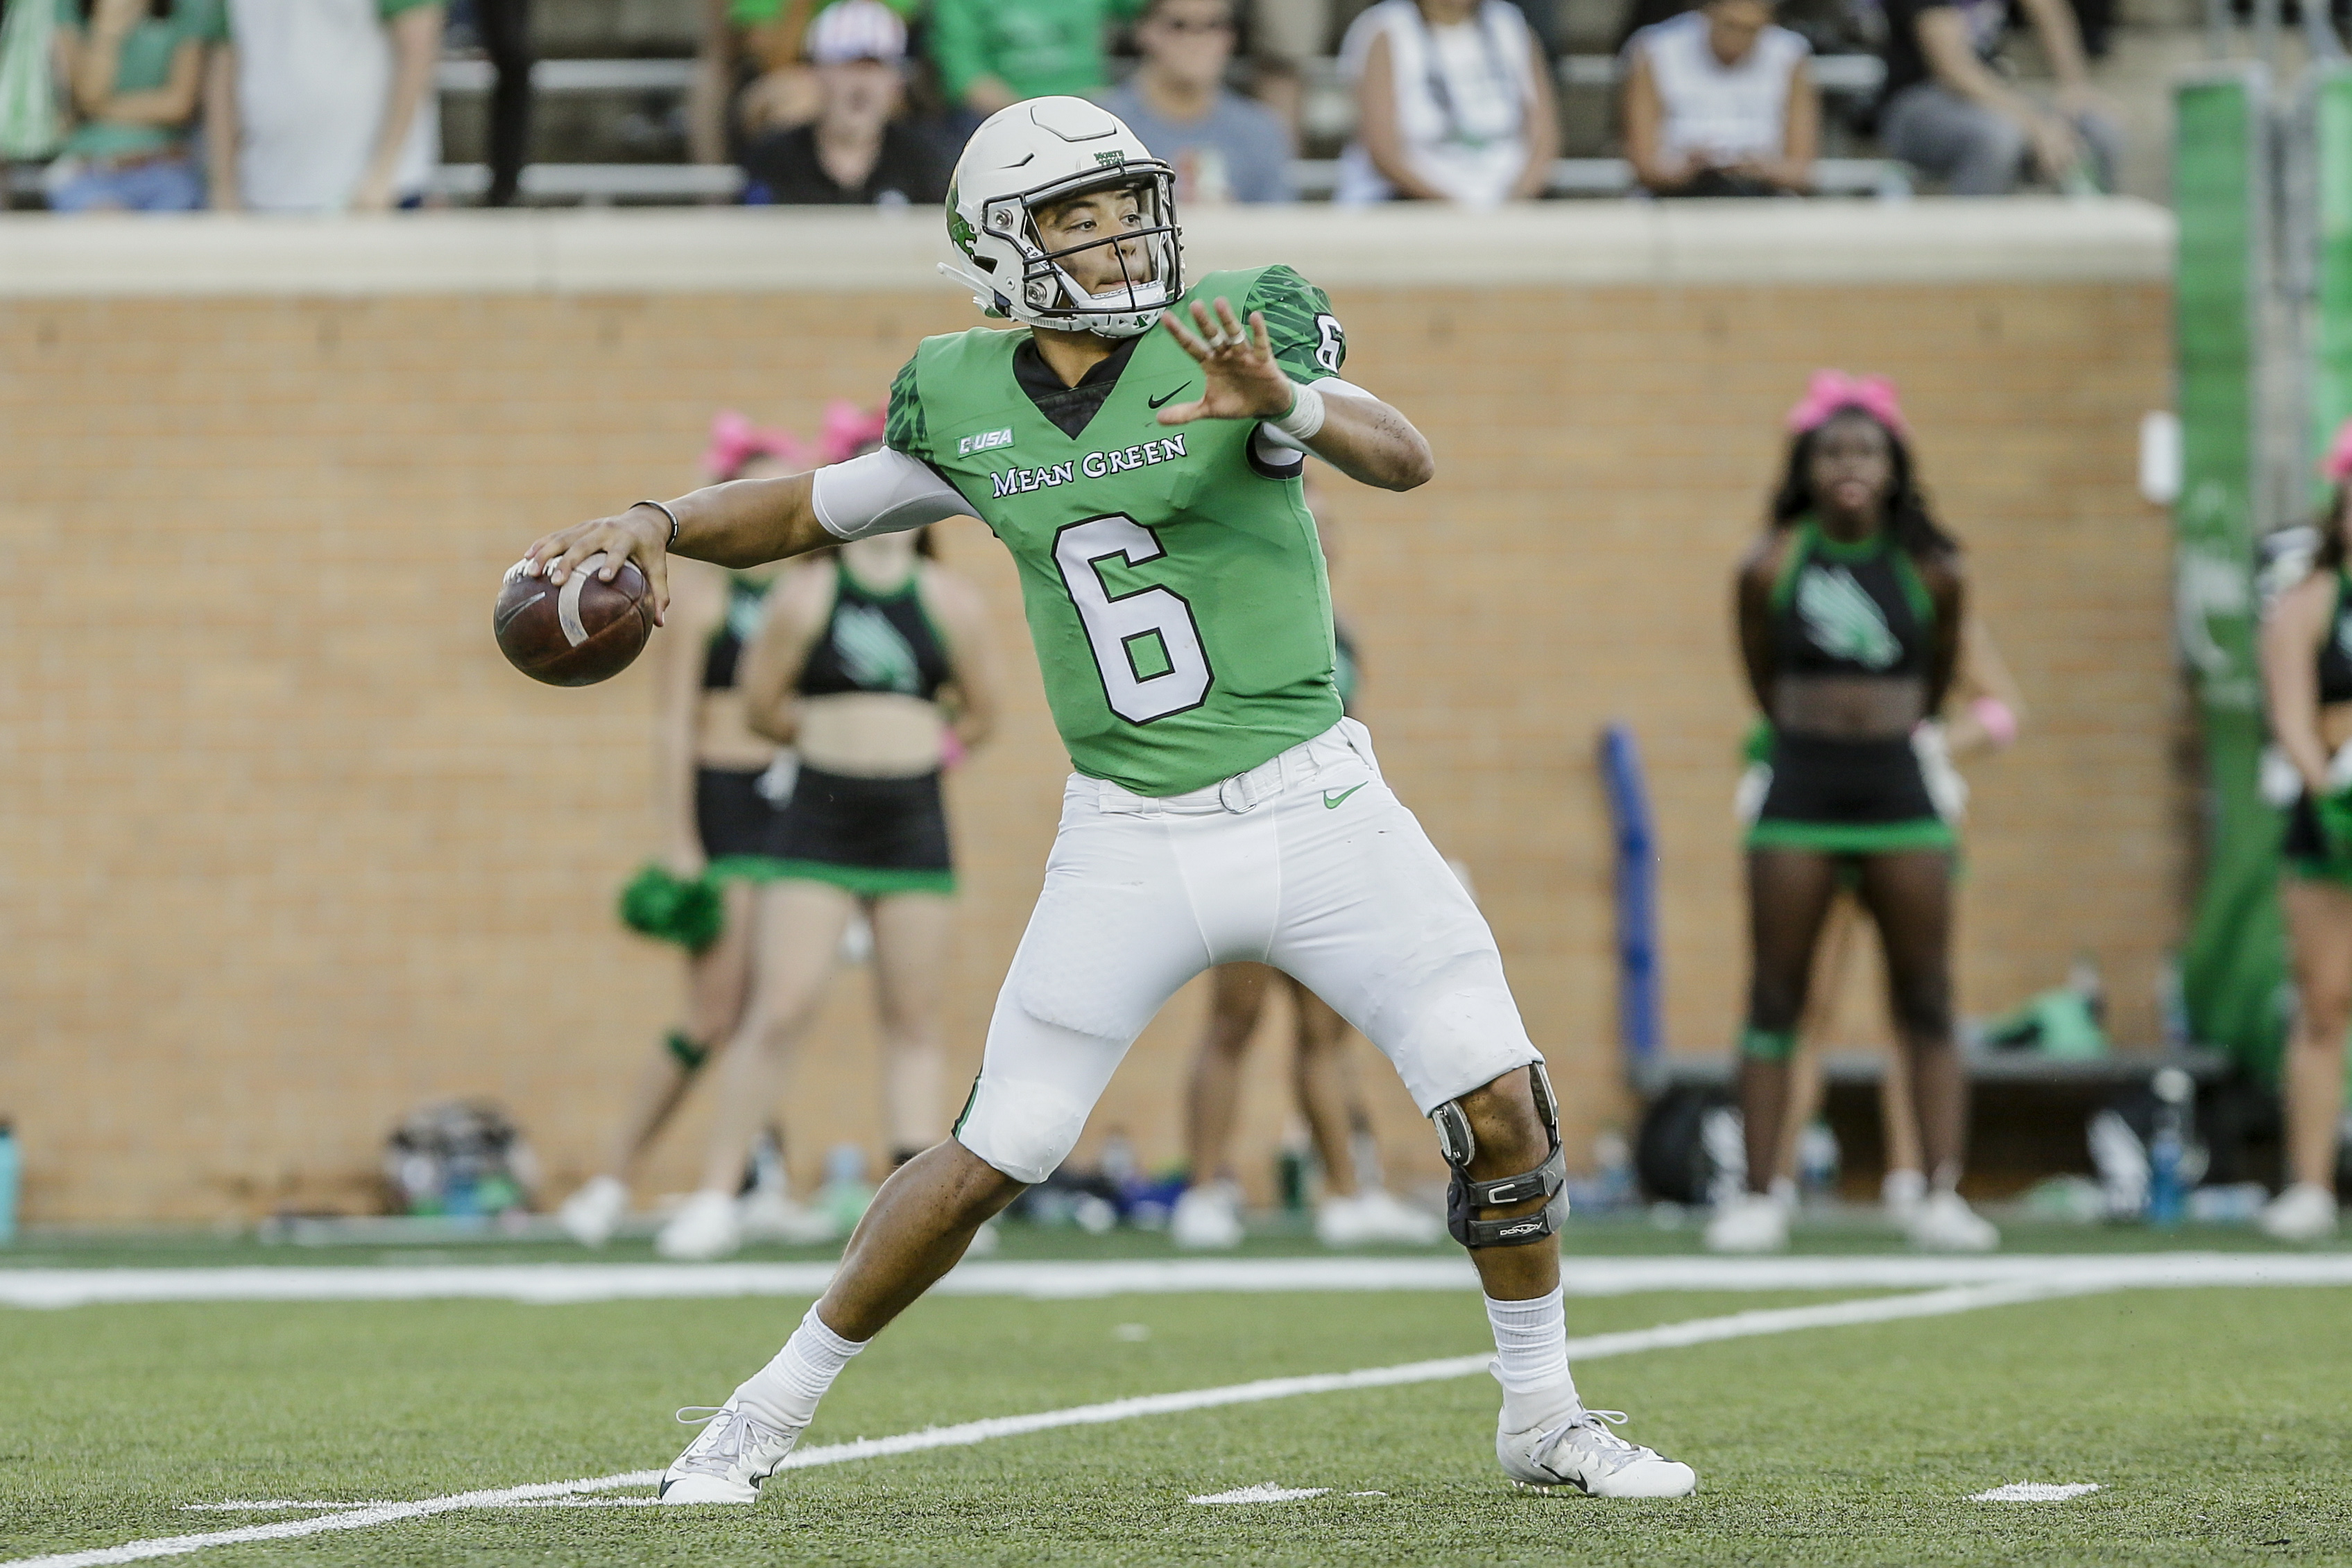 COLLEGE FOOTBALL: OCT 27 Rice at North Texas